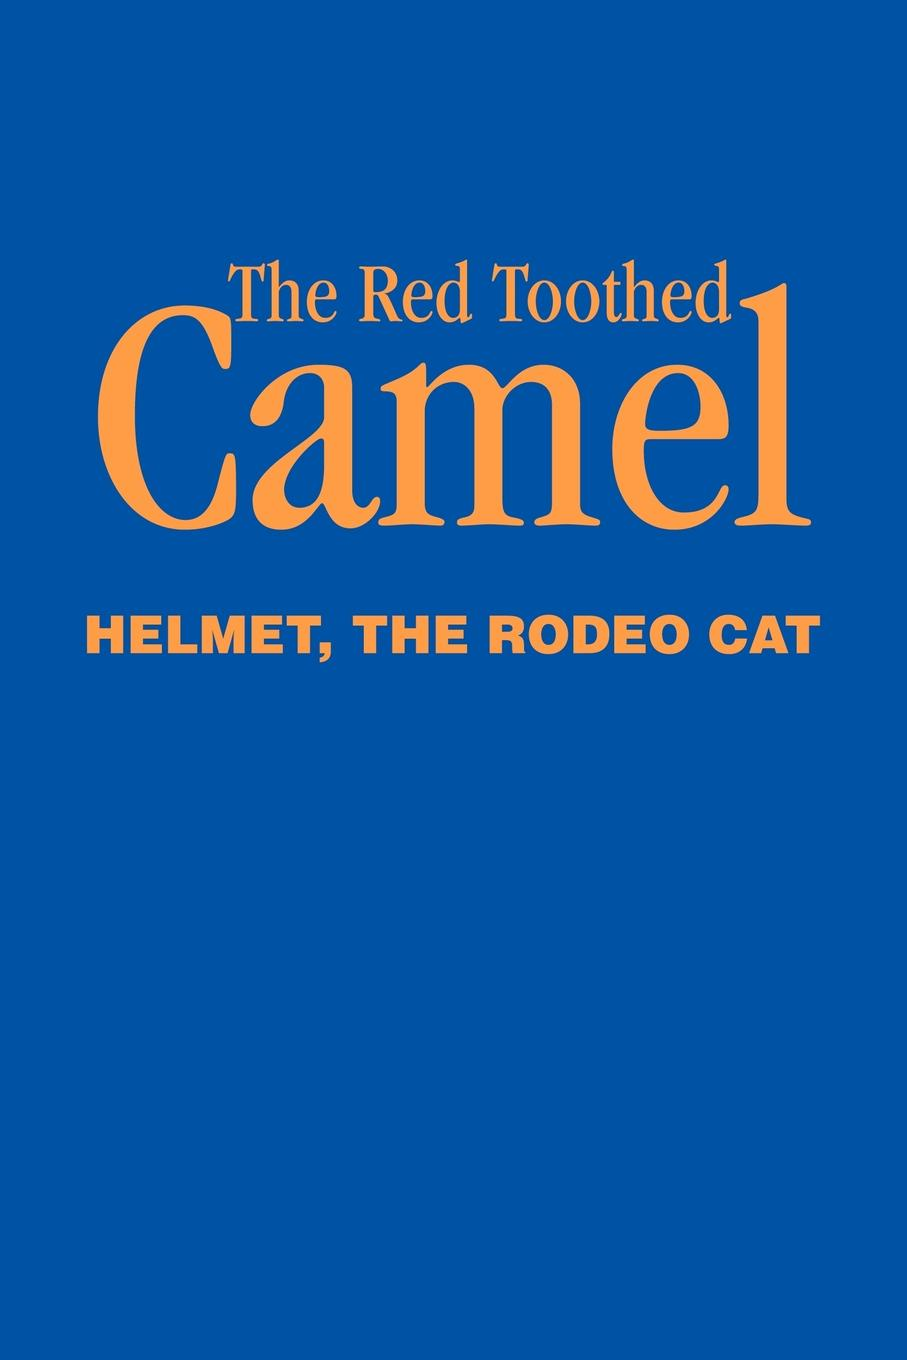 The Rodeo Cat Helmet Red Toothed Camel